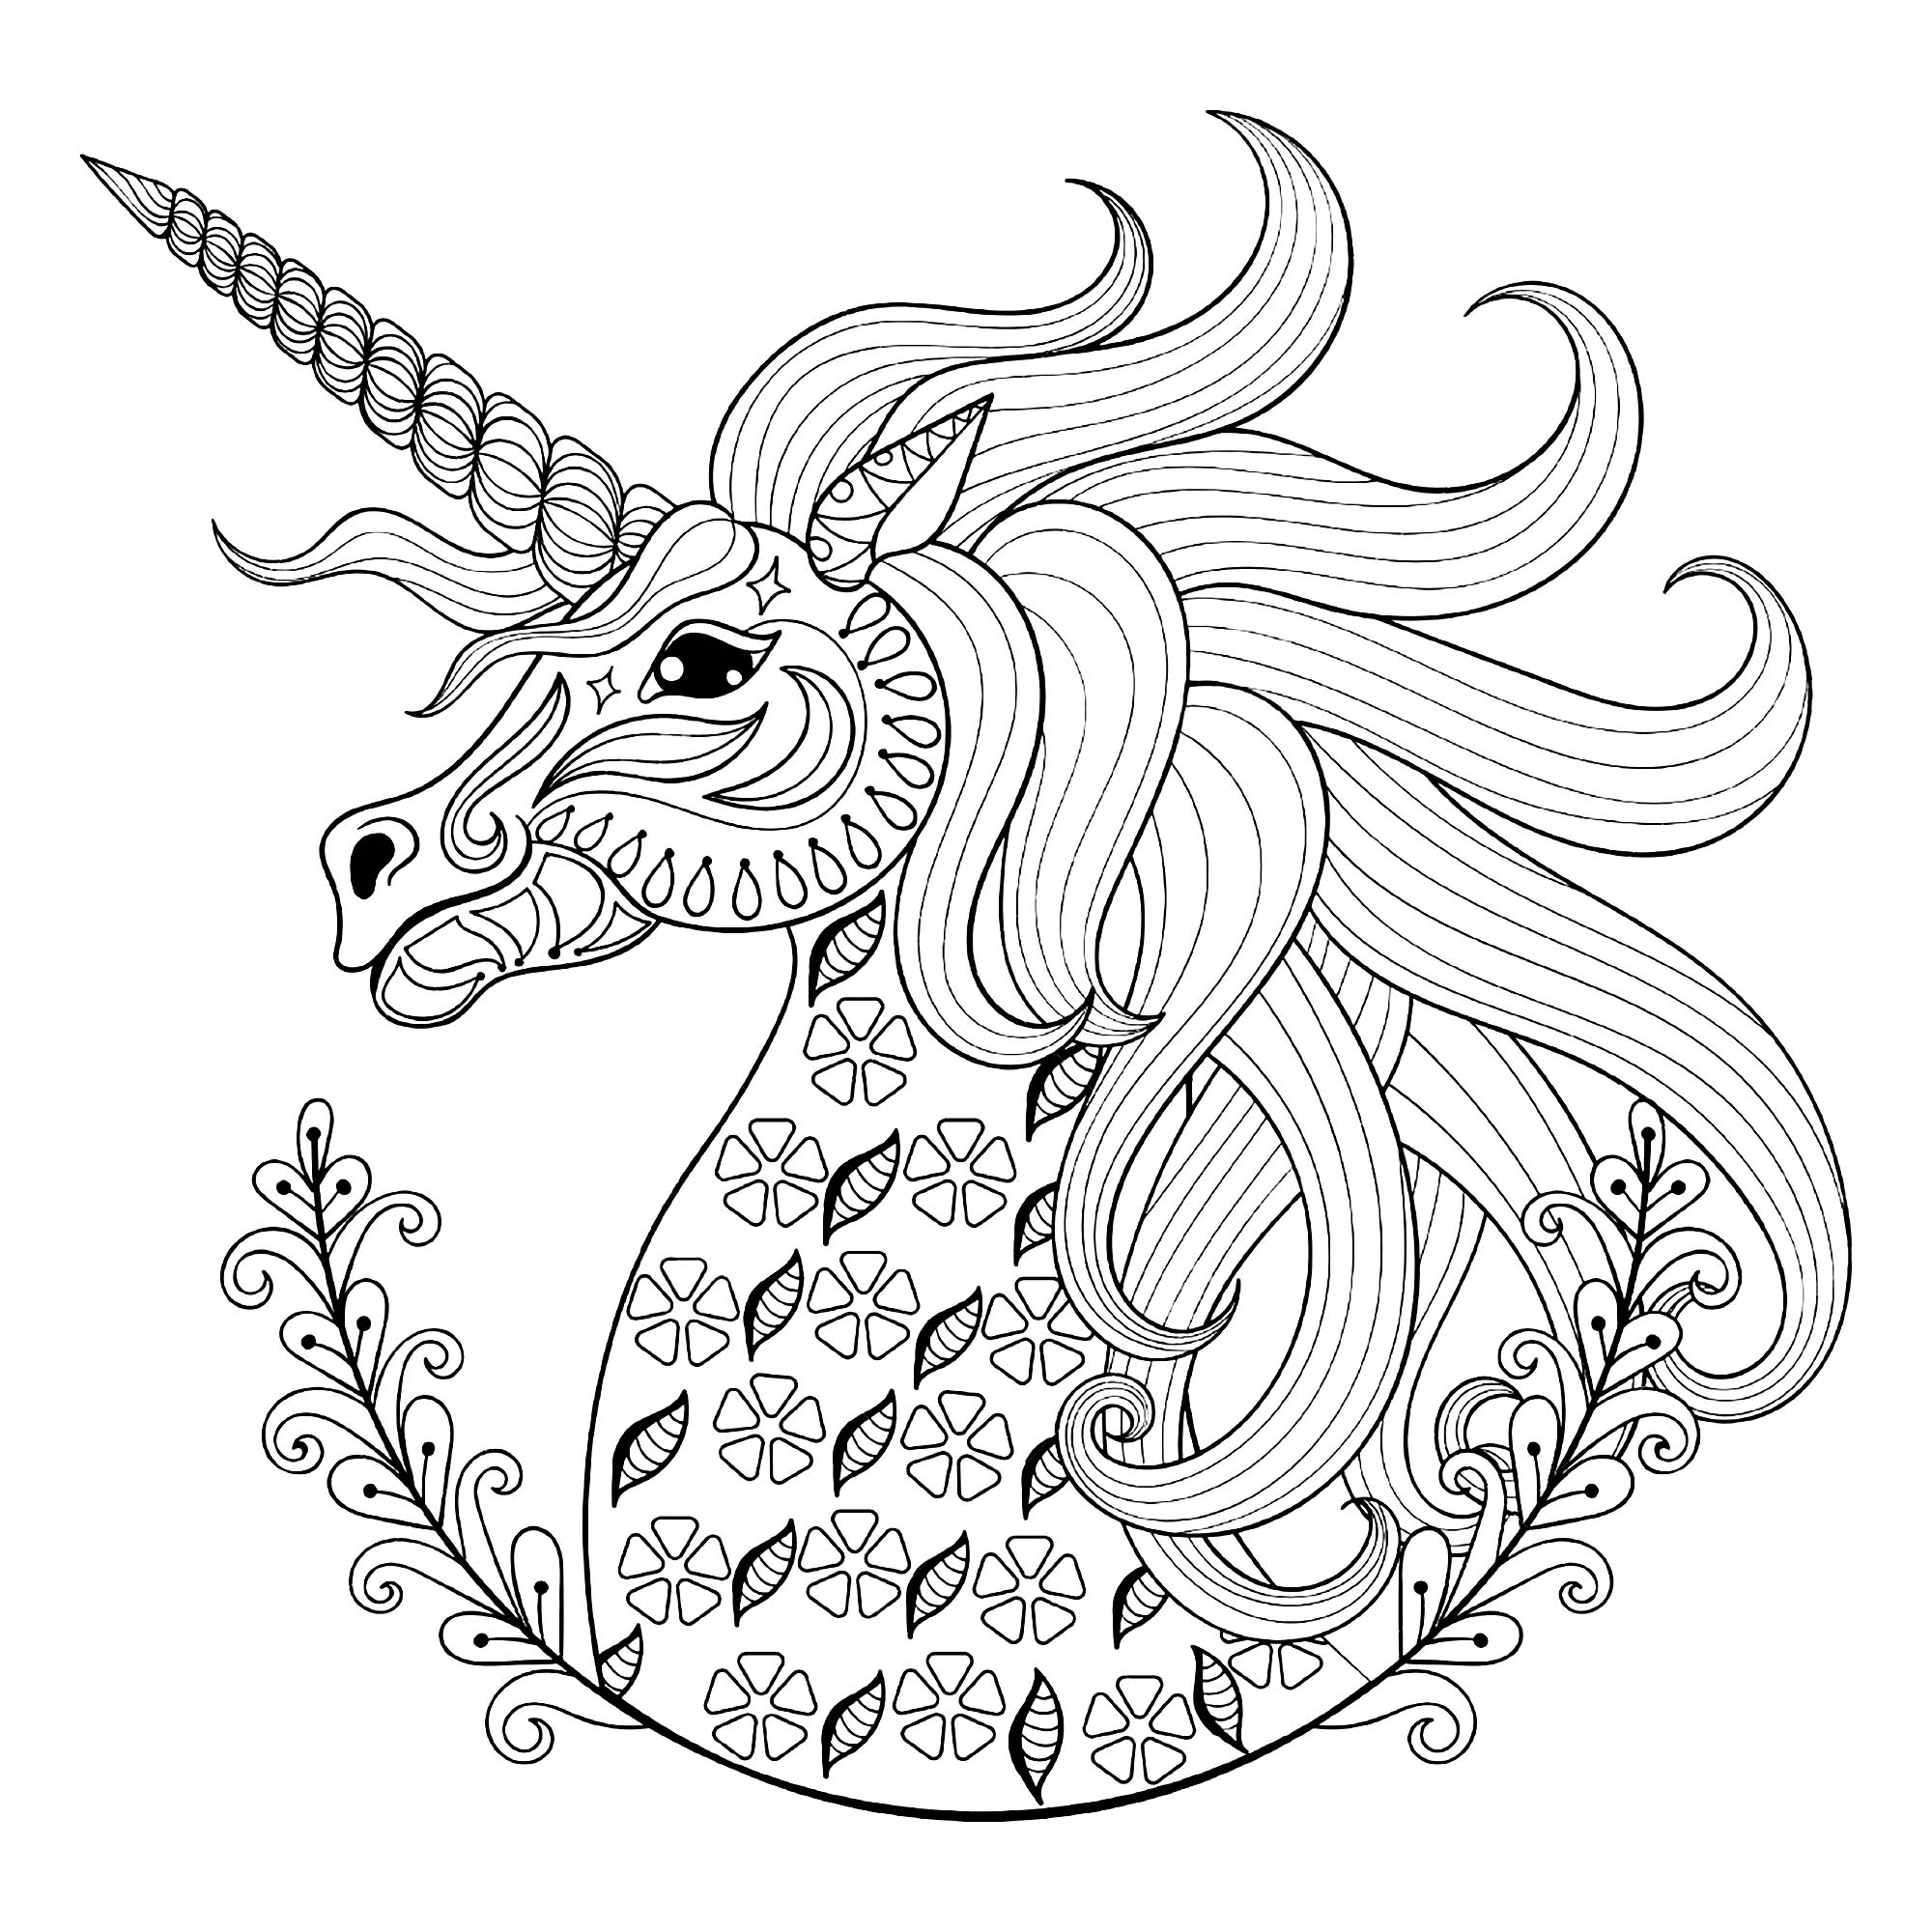 Unicorns to download - Unicorns Kids Coloring Pages